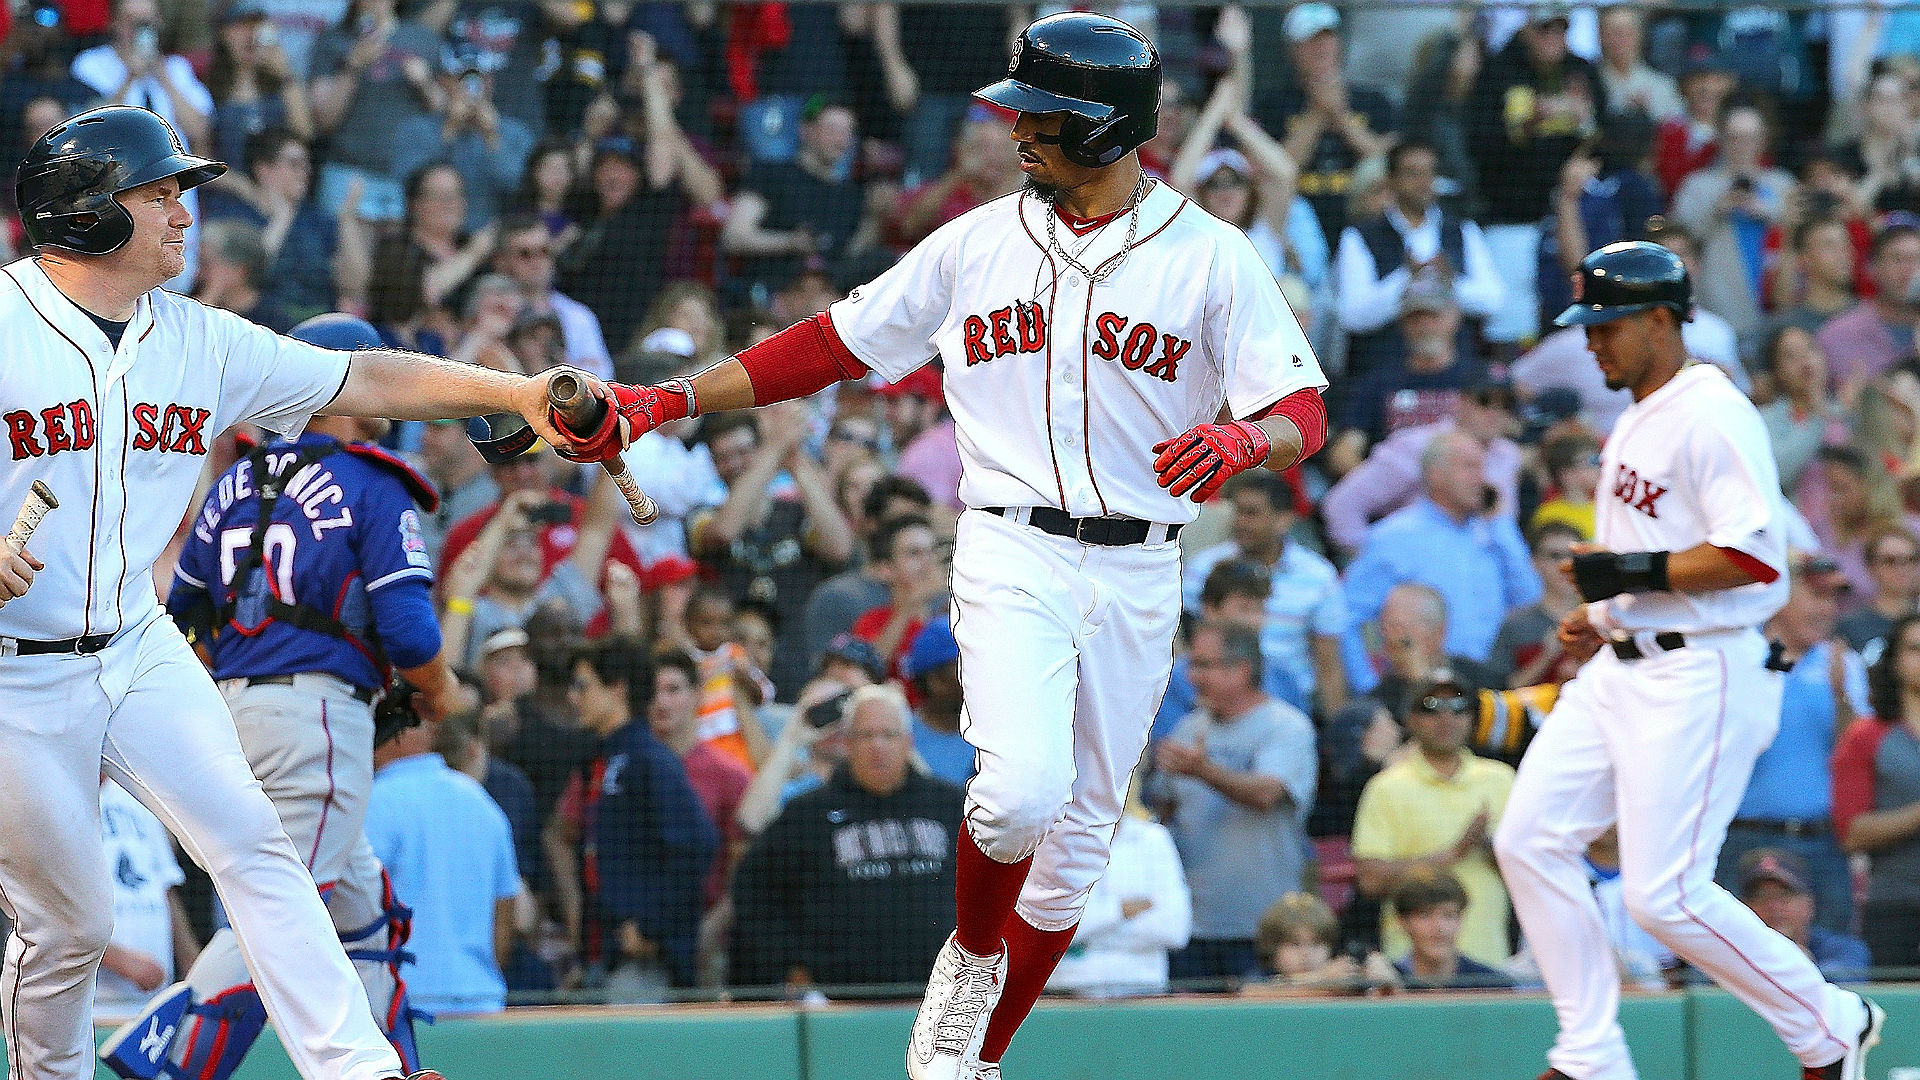 Jesse Chavez walked in Mookie Betts with the bases loaded in the bottom of the ninth to give the Red Sox a 4-3 win over the Rangers.